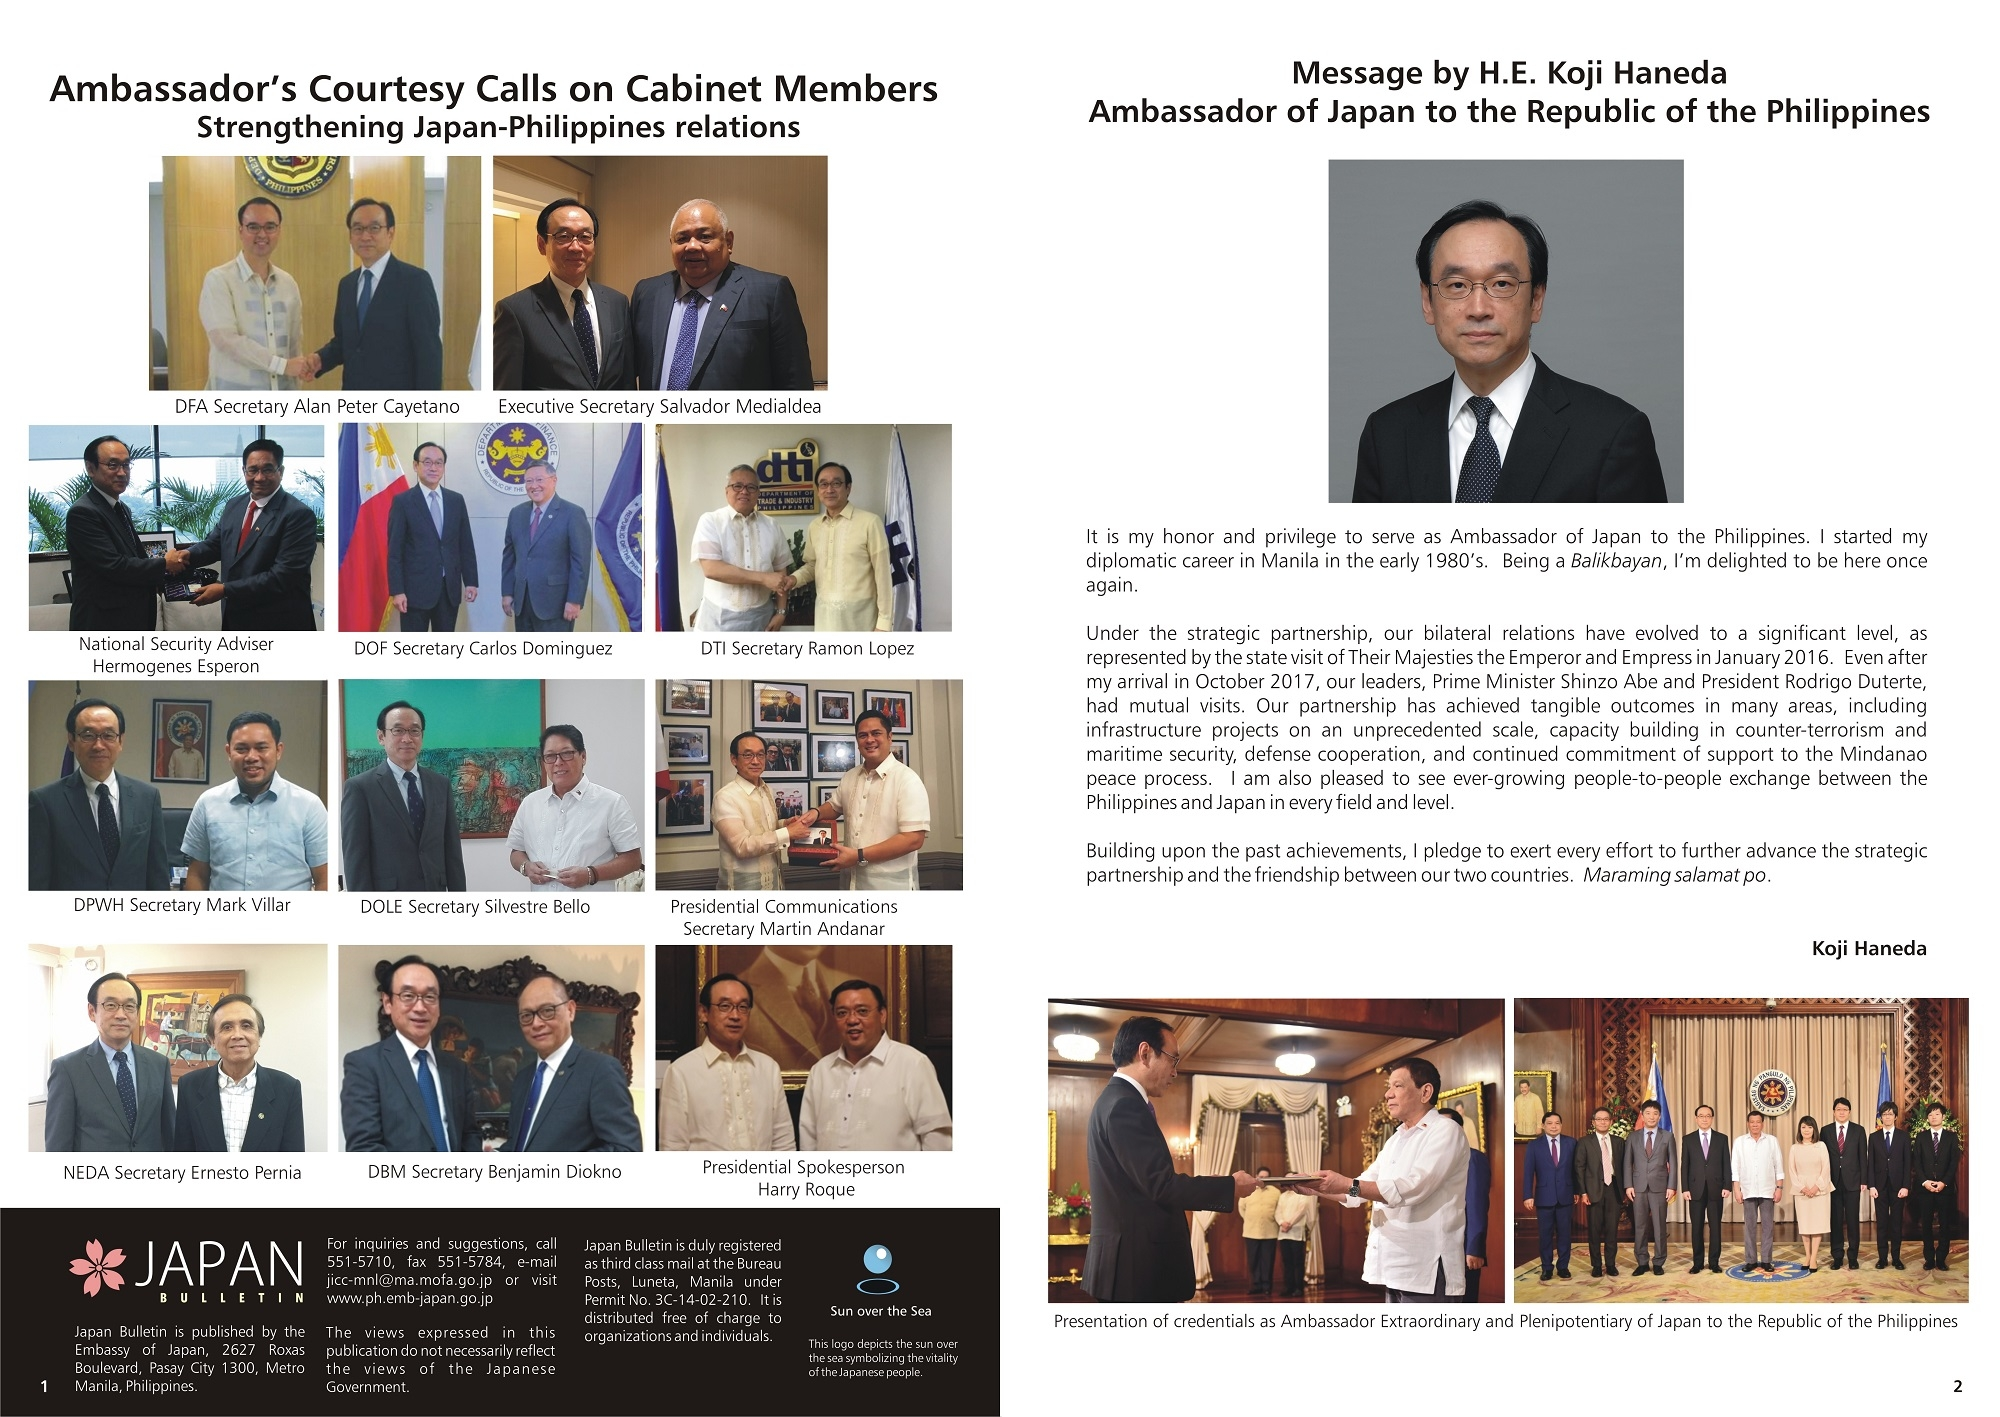 Japan Bulletin Spring 2018 : Embassy of Japan in the Philippines